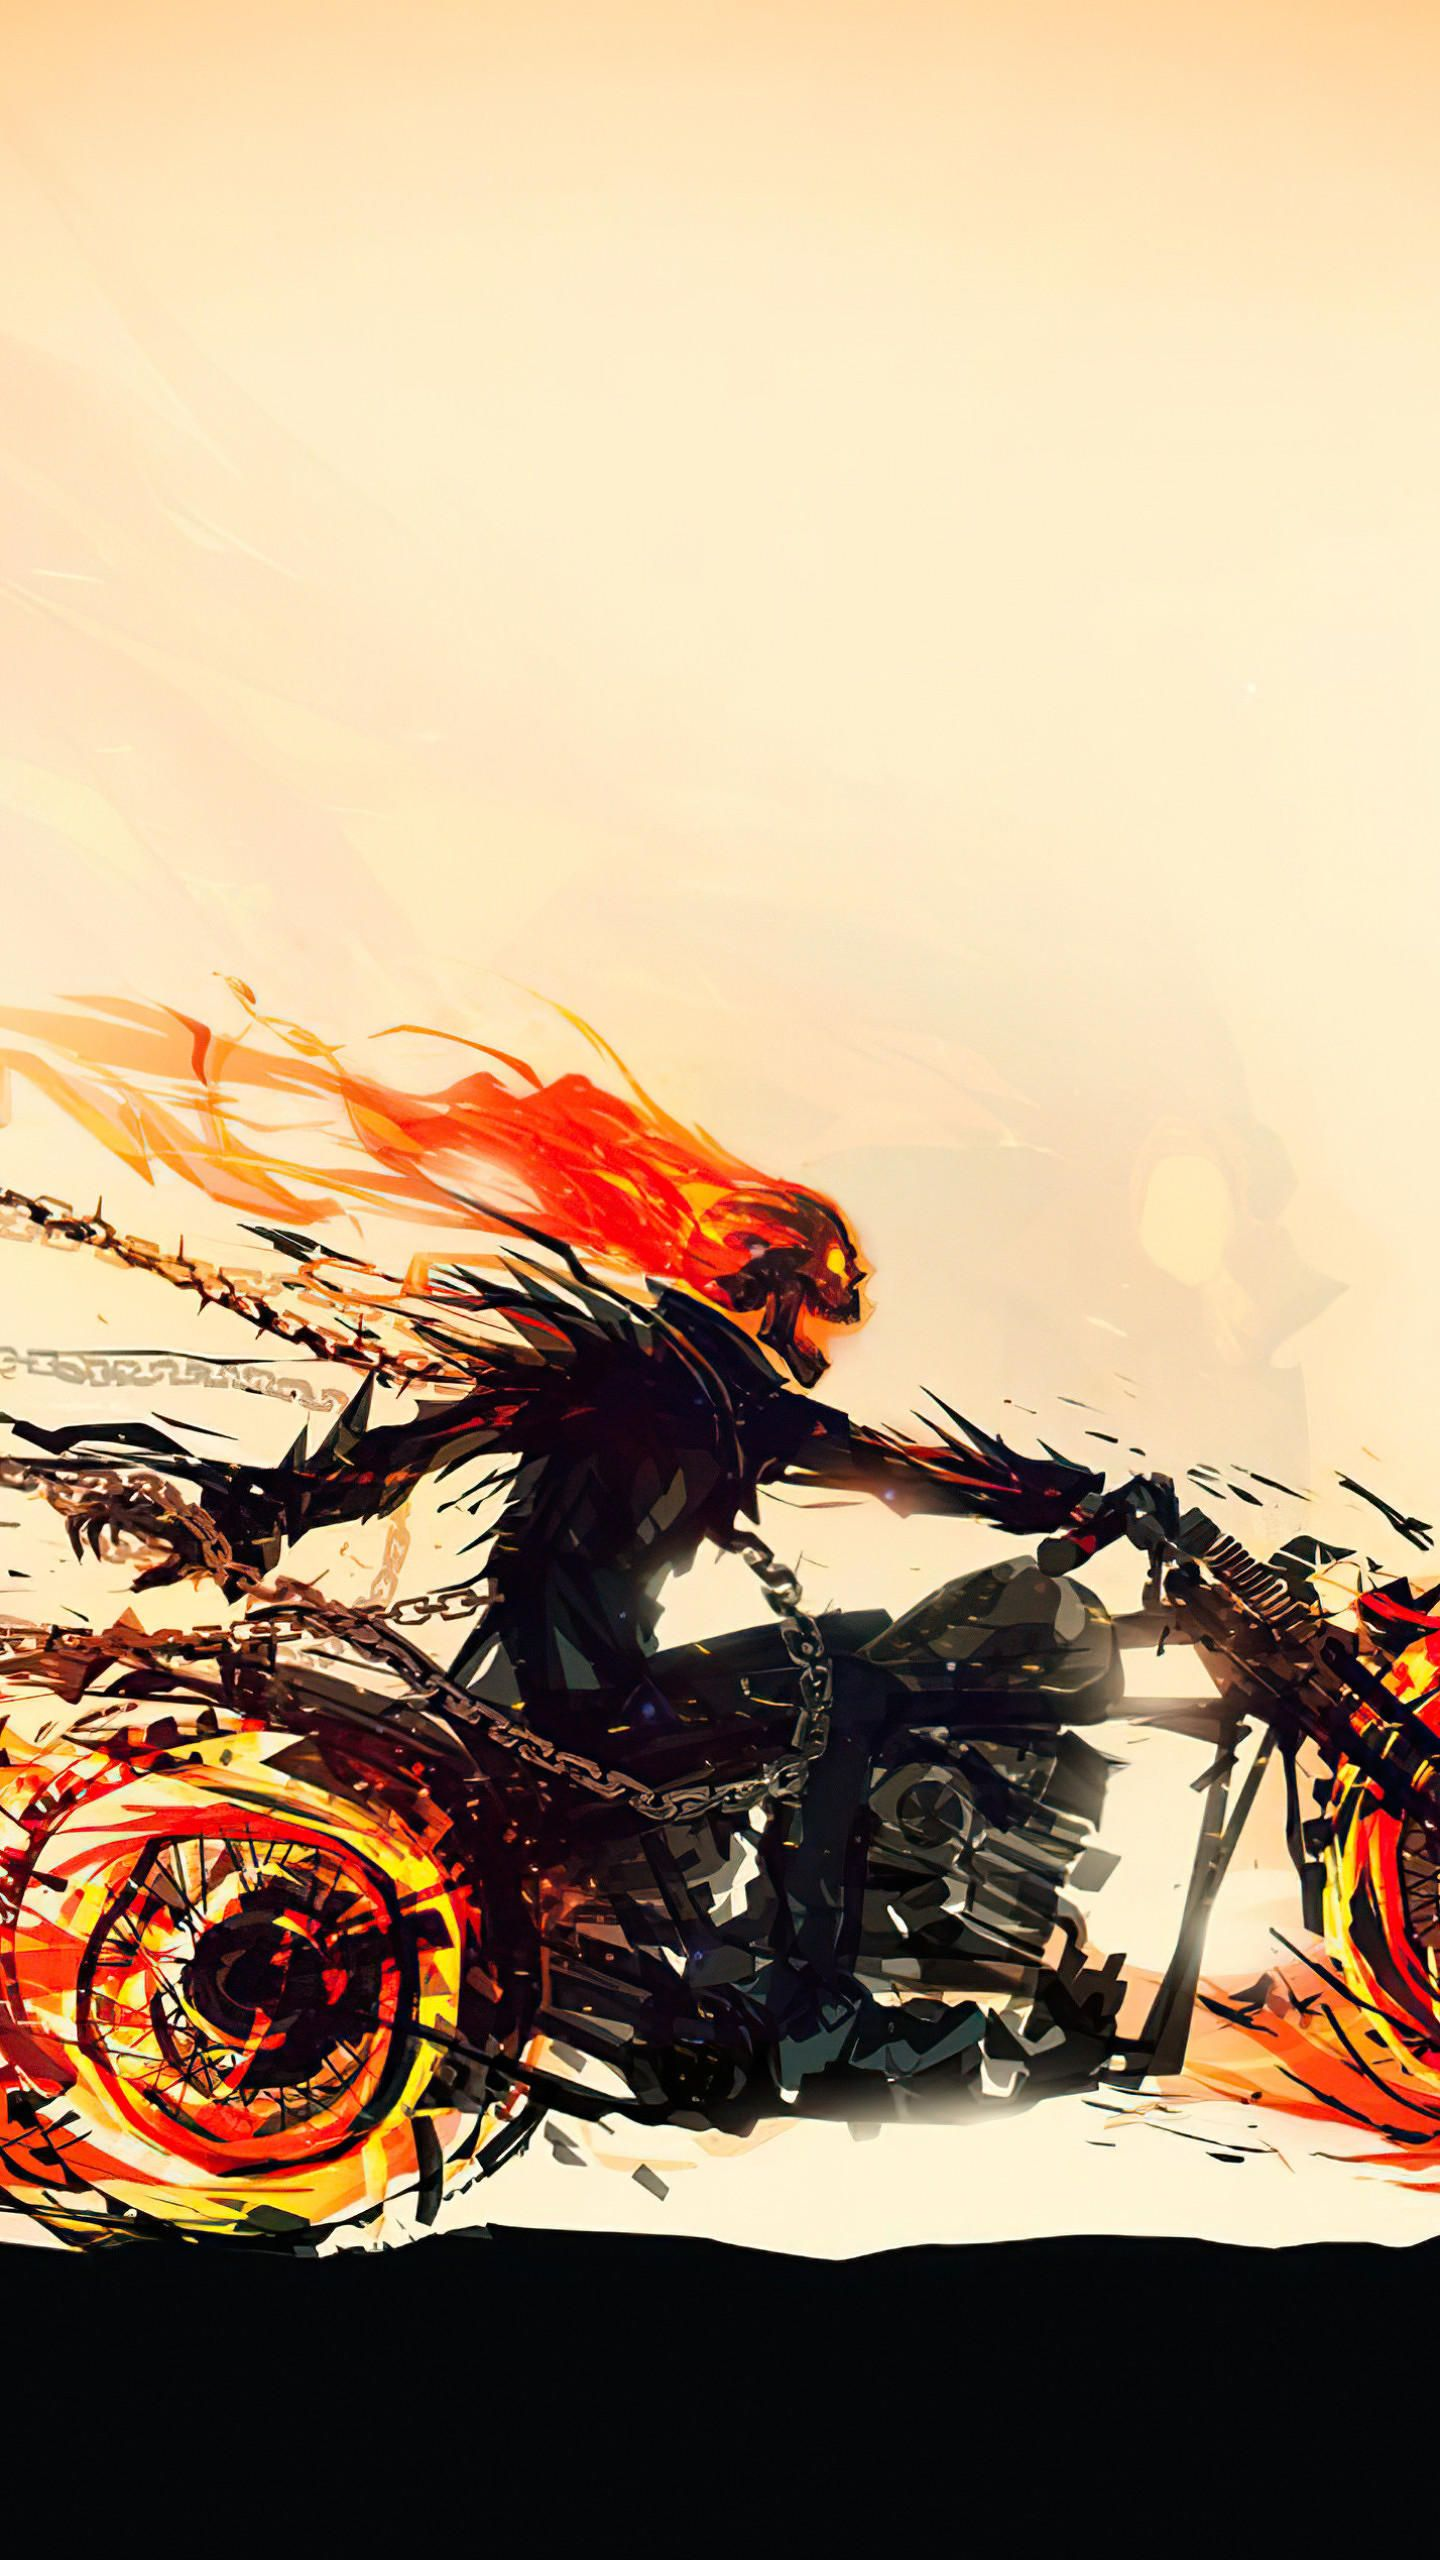 Ghost Rider Hellfire Rider 4k Hd Wallpaper In 2020 With Images